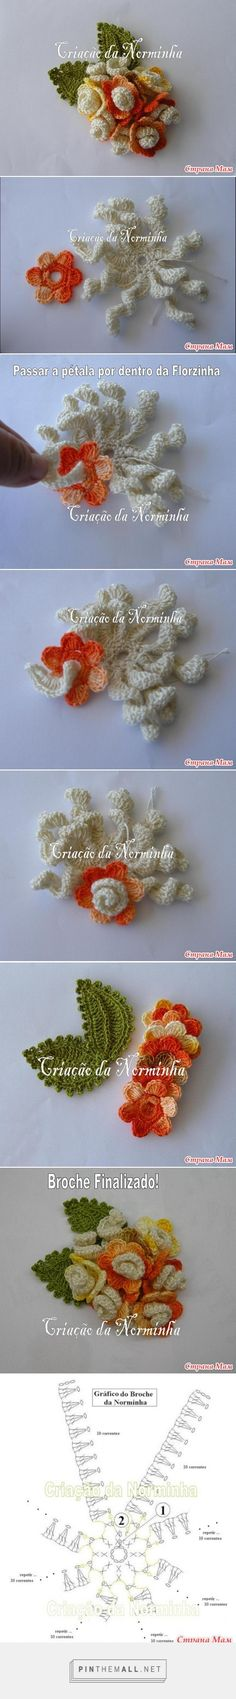 Fiori particolari... - a grouped images picture - Pin Them All